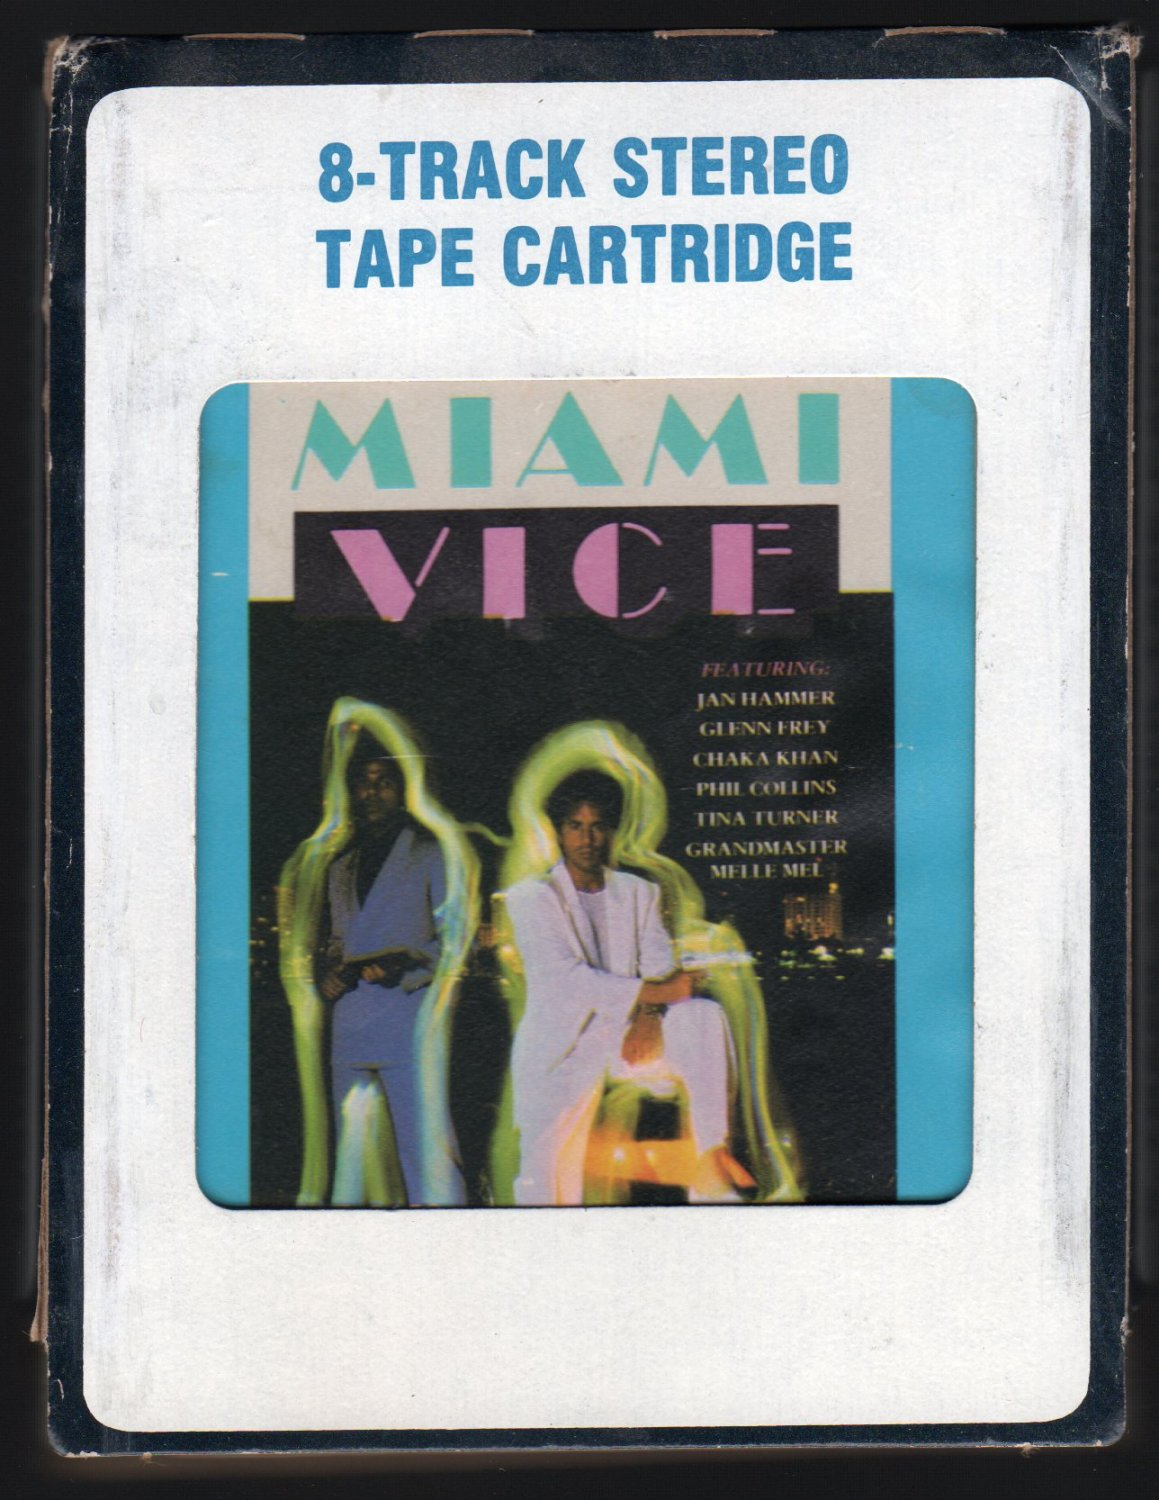 Miami Vice - Music From The Television Series 1985 CRC A44 8-TRACK TAPE